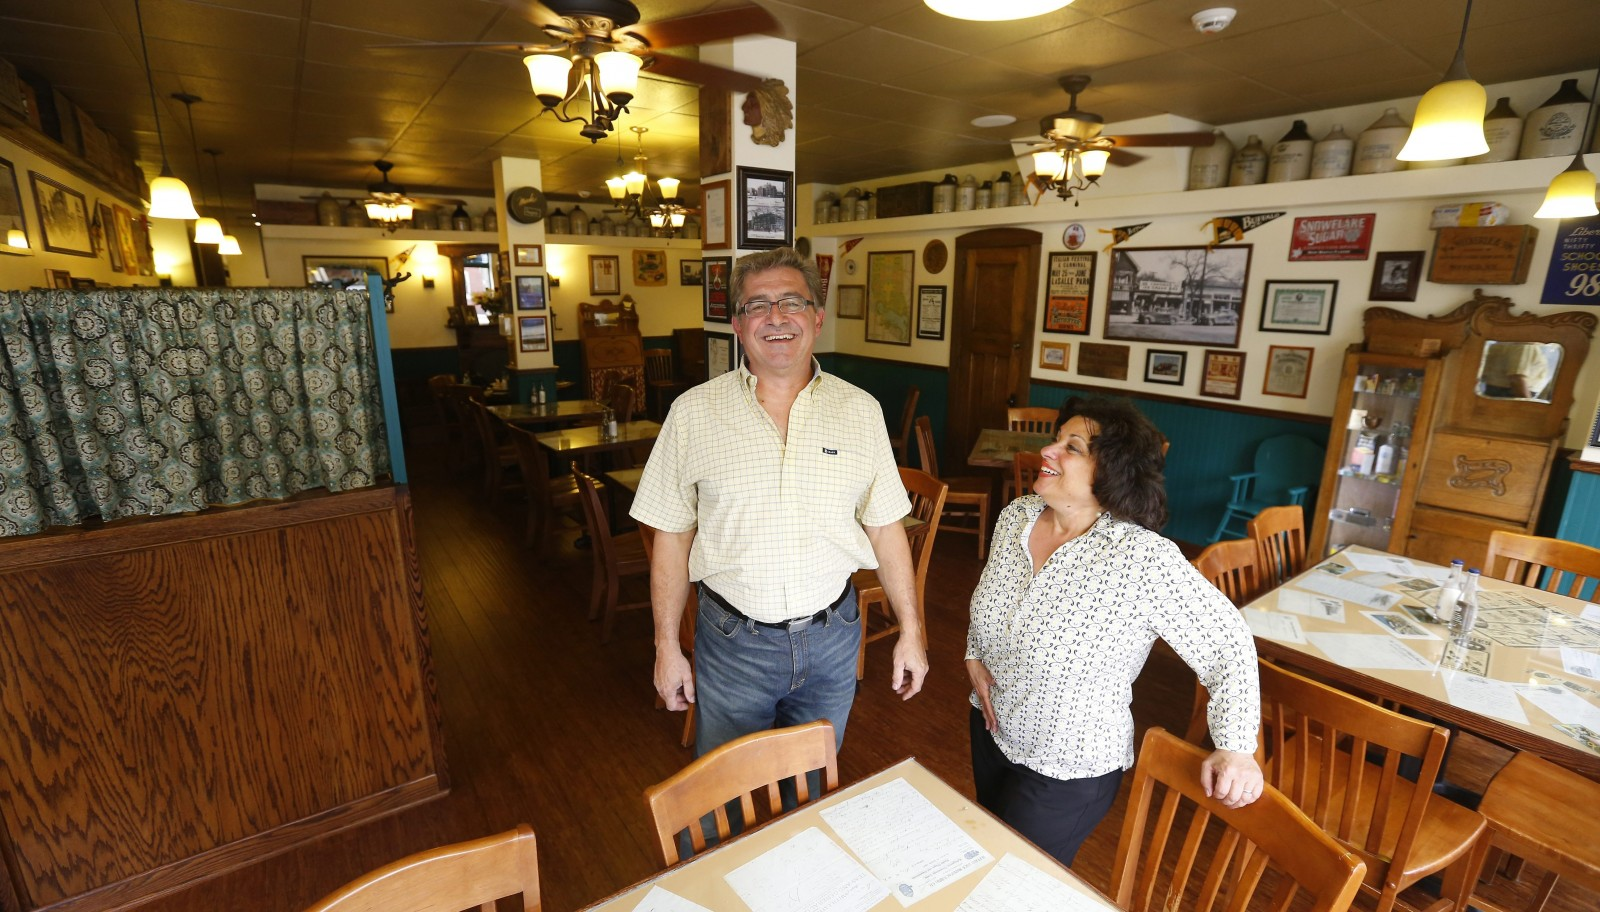 At top, Leonard Mattie and his wife Nancy Abramo show off Parkside Meadow, their new restaurant. The restaurant is decorated with elements evoking Buffalo's rich history, including the 1901 Pan-American Exposition, as well as long-departed bars and entertainment venues.